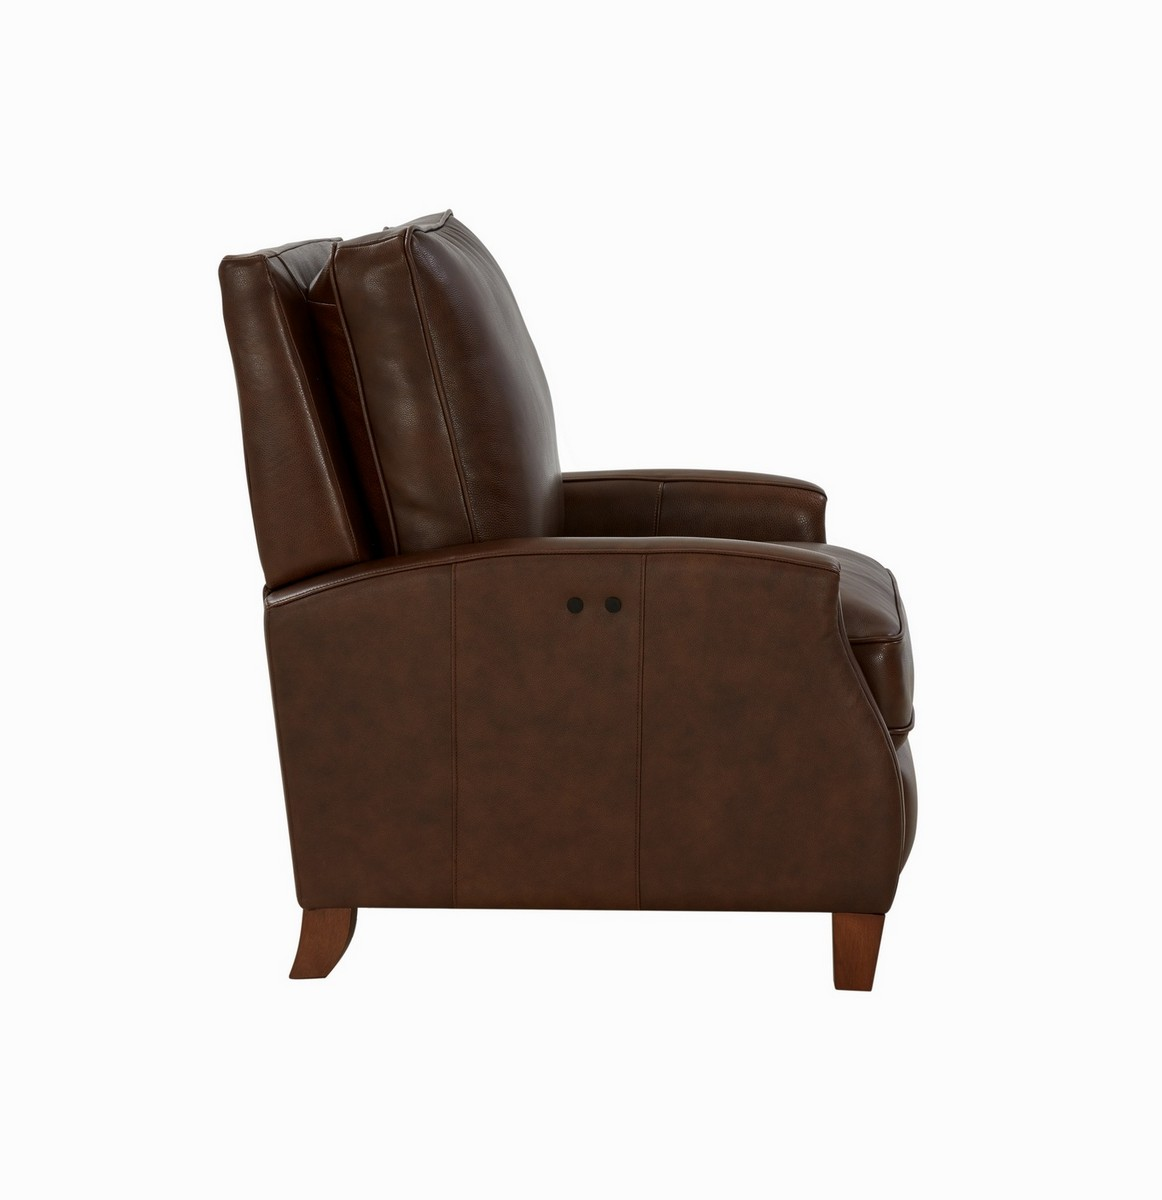 Barcalounger Penrose Power Recliner Chair - Wenlock Double Chocolate/All Leather